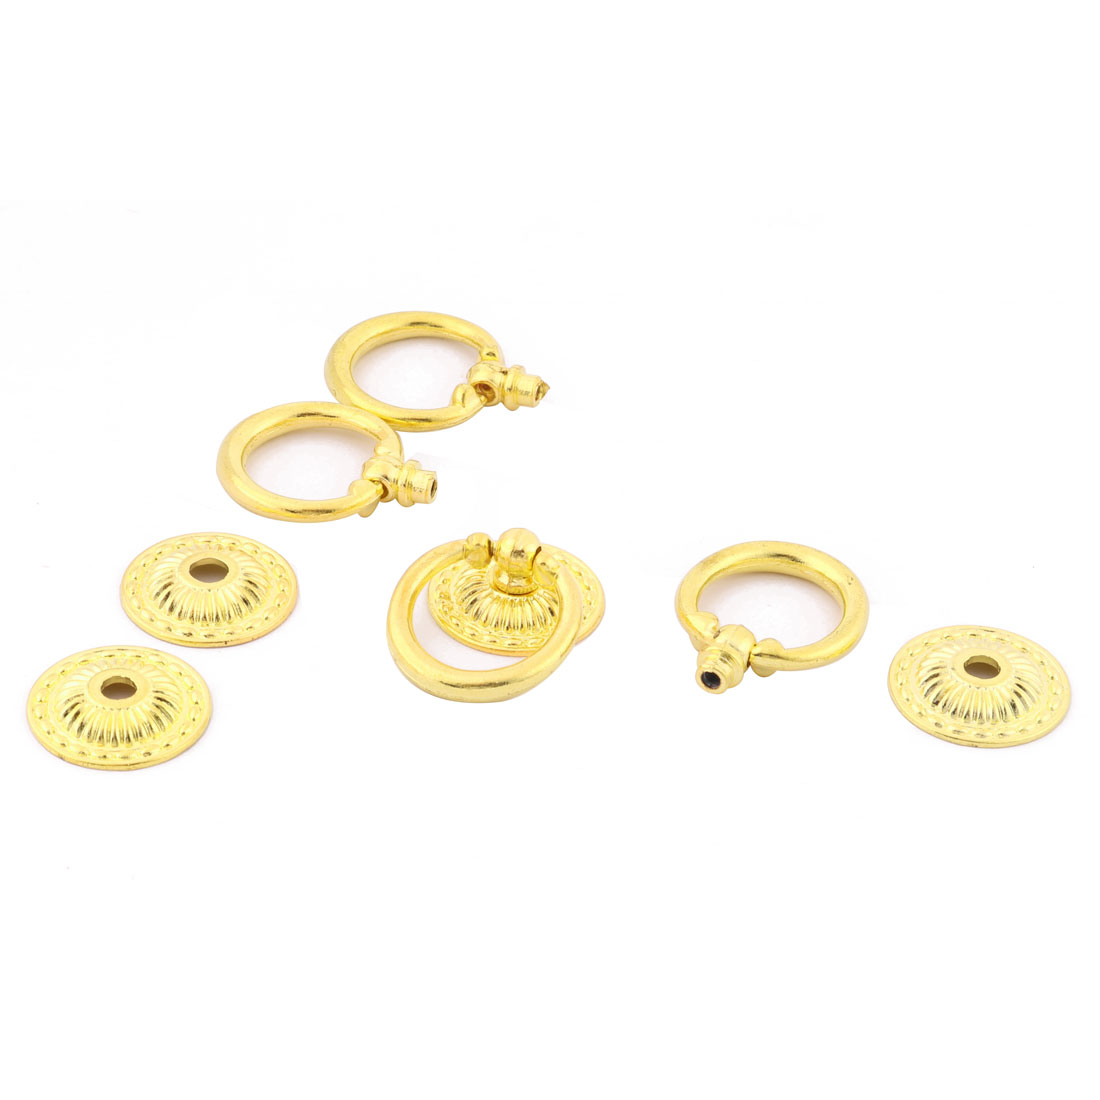 Metal Retro Style Hardware Tool Drawer Cupboard Ring Door Pull Handle Knob Gold Tone 4 Pcs